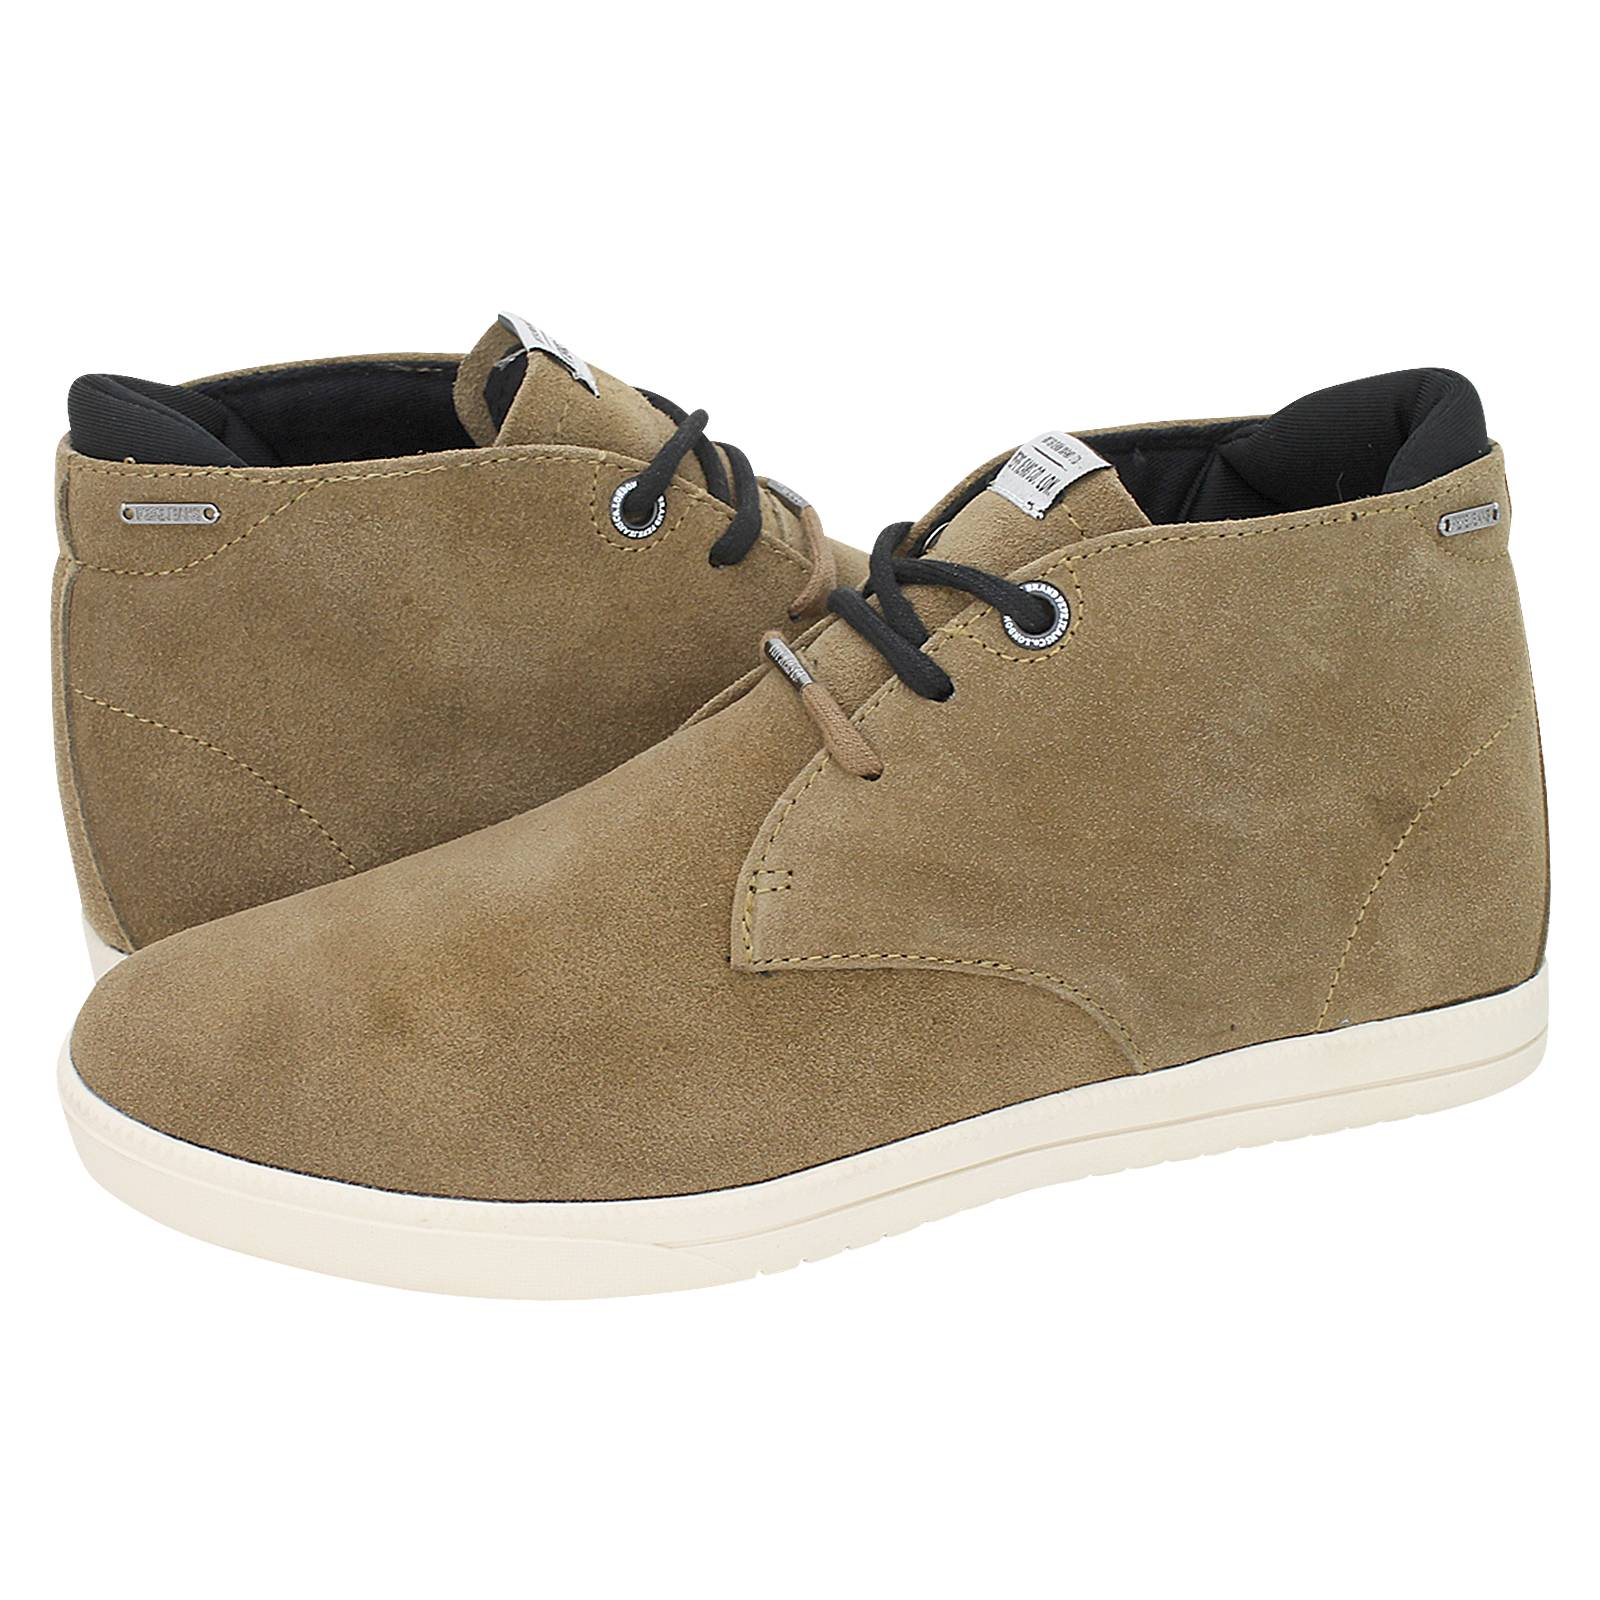 d2b482d11f Bolton Sand - Pepe Jeans Men's low boots made of suede and lycra ...